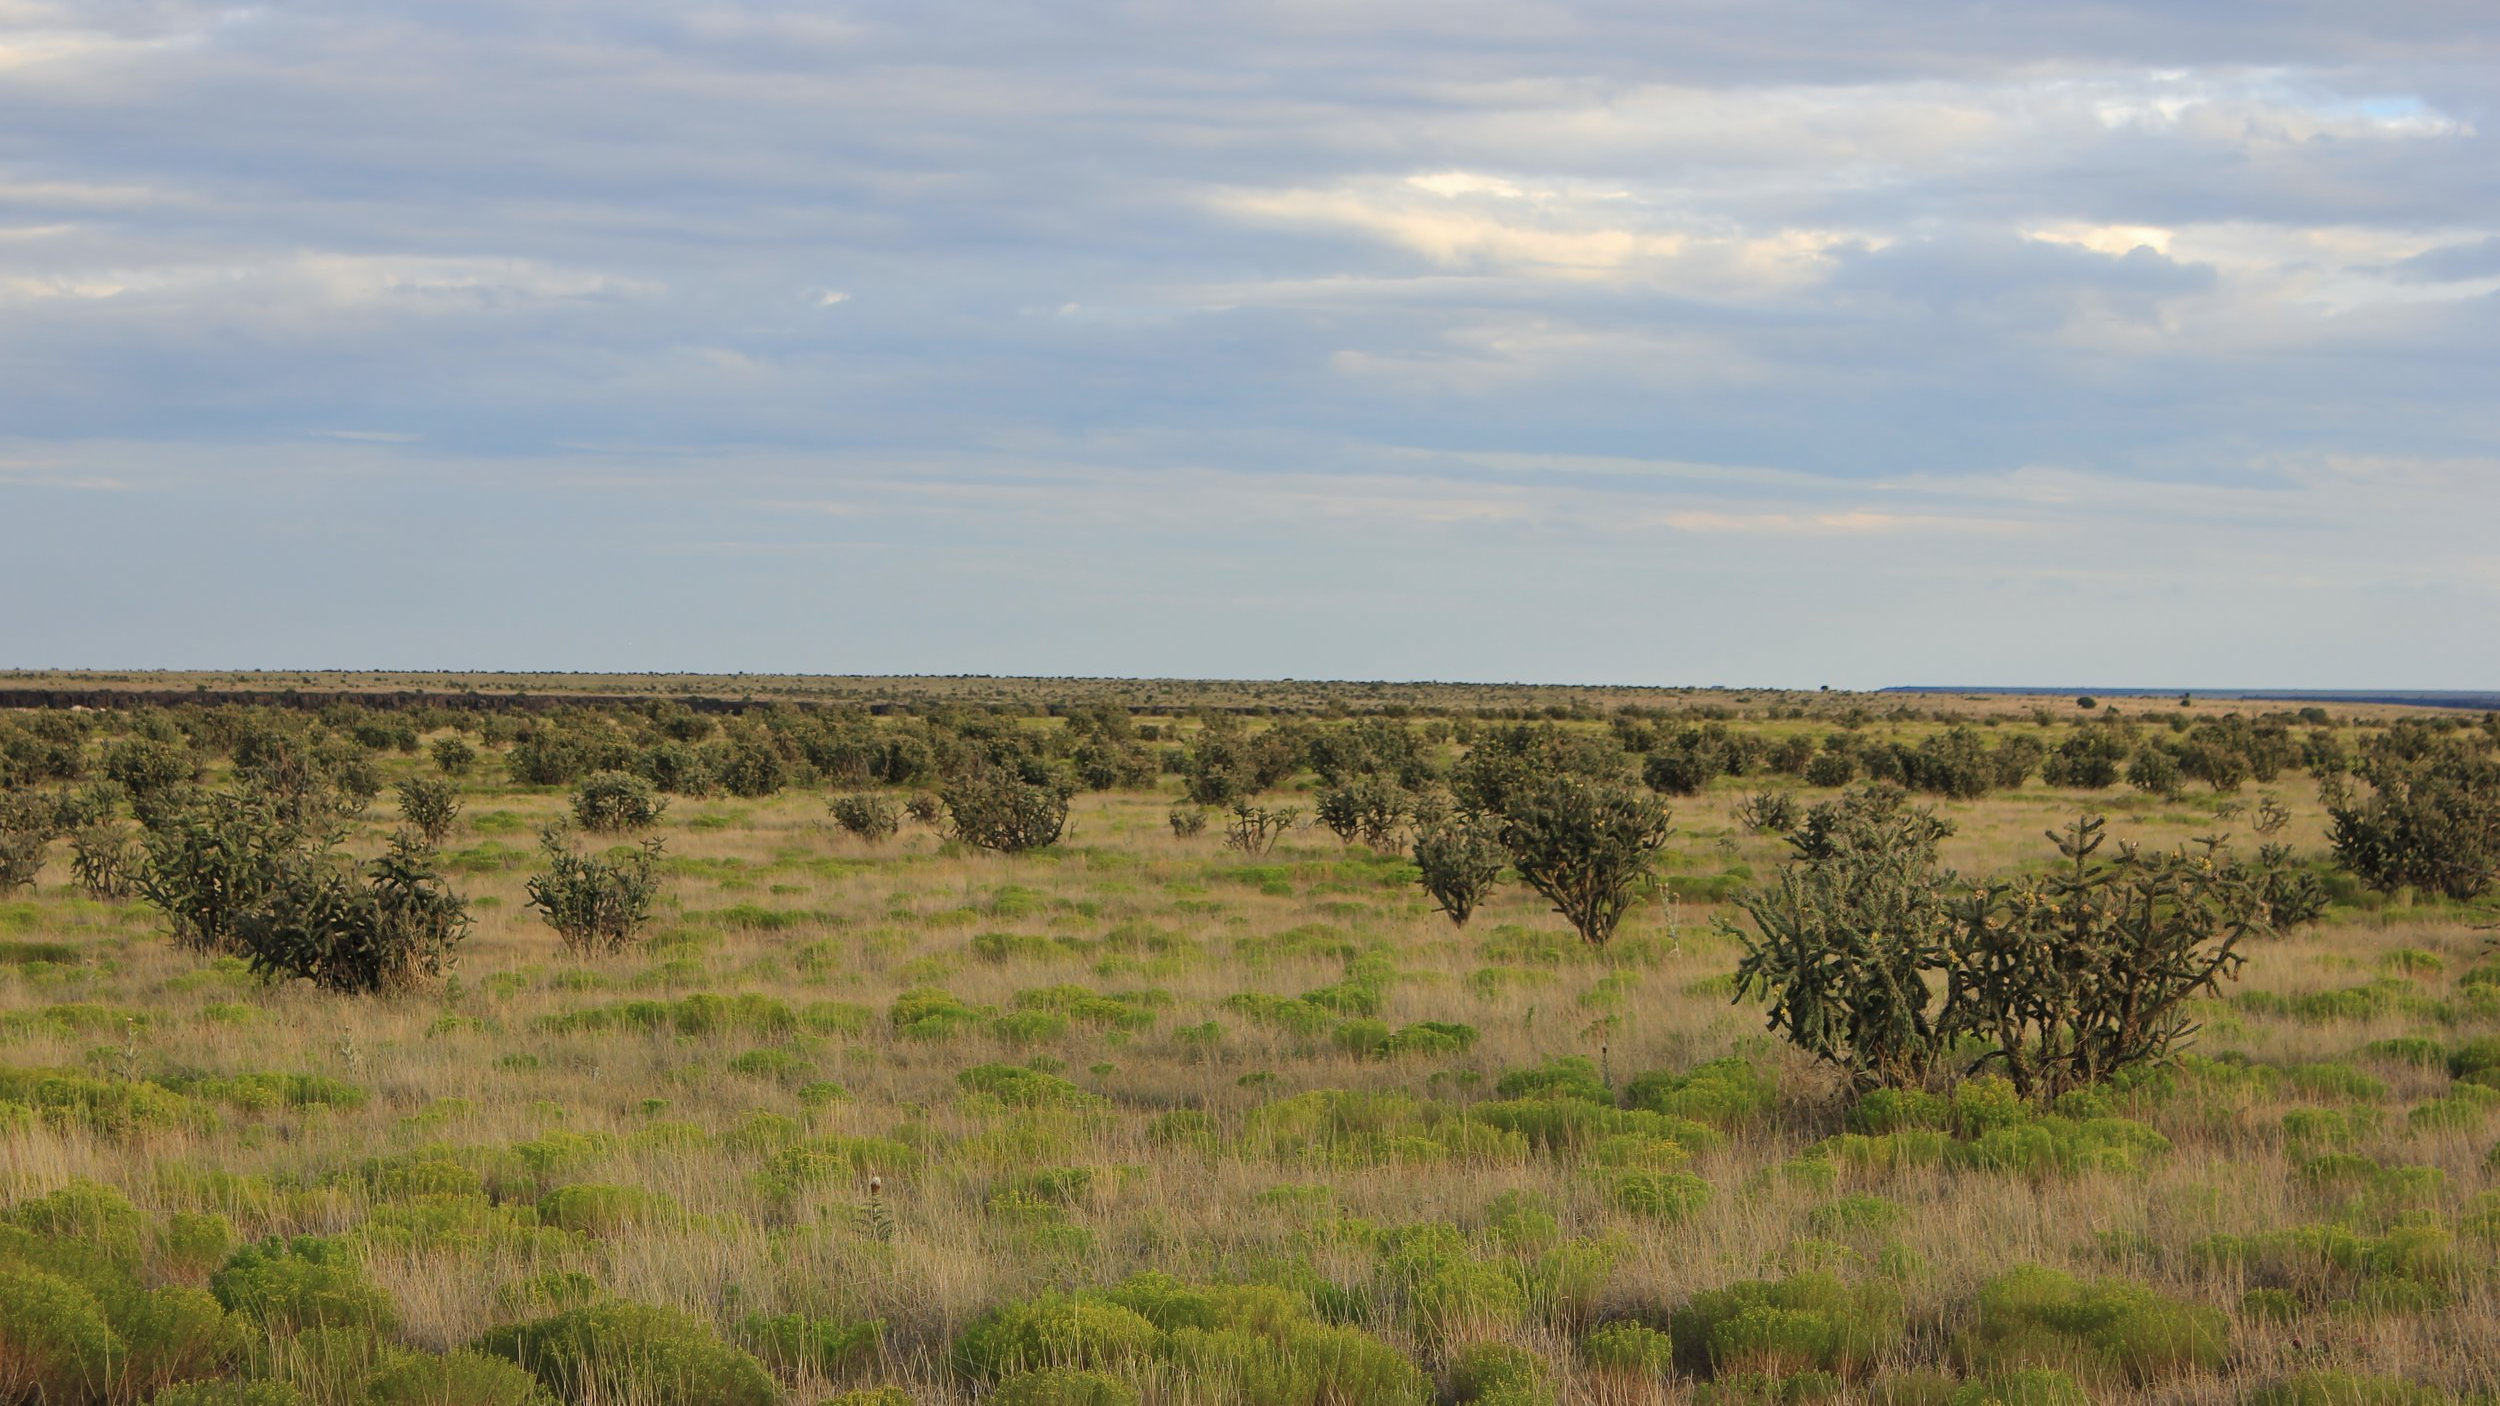 Figure 3. Cholla often becomes problematic creating dense thickets on rangeland or natural areas. PHOTO BY CELESTINE DUNCAN